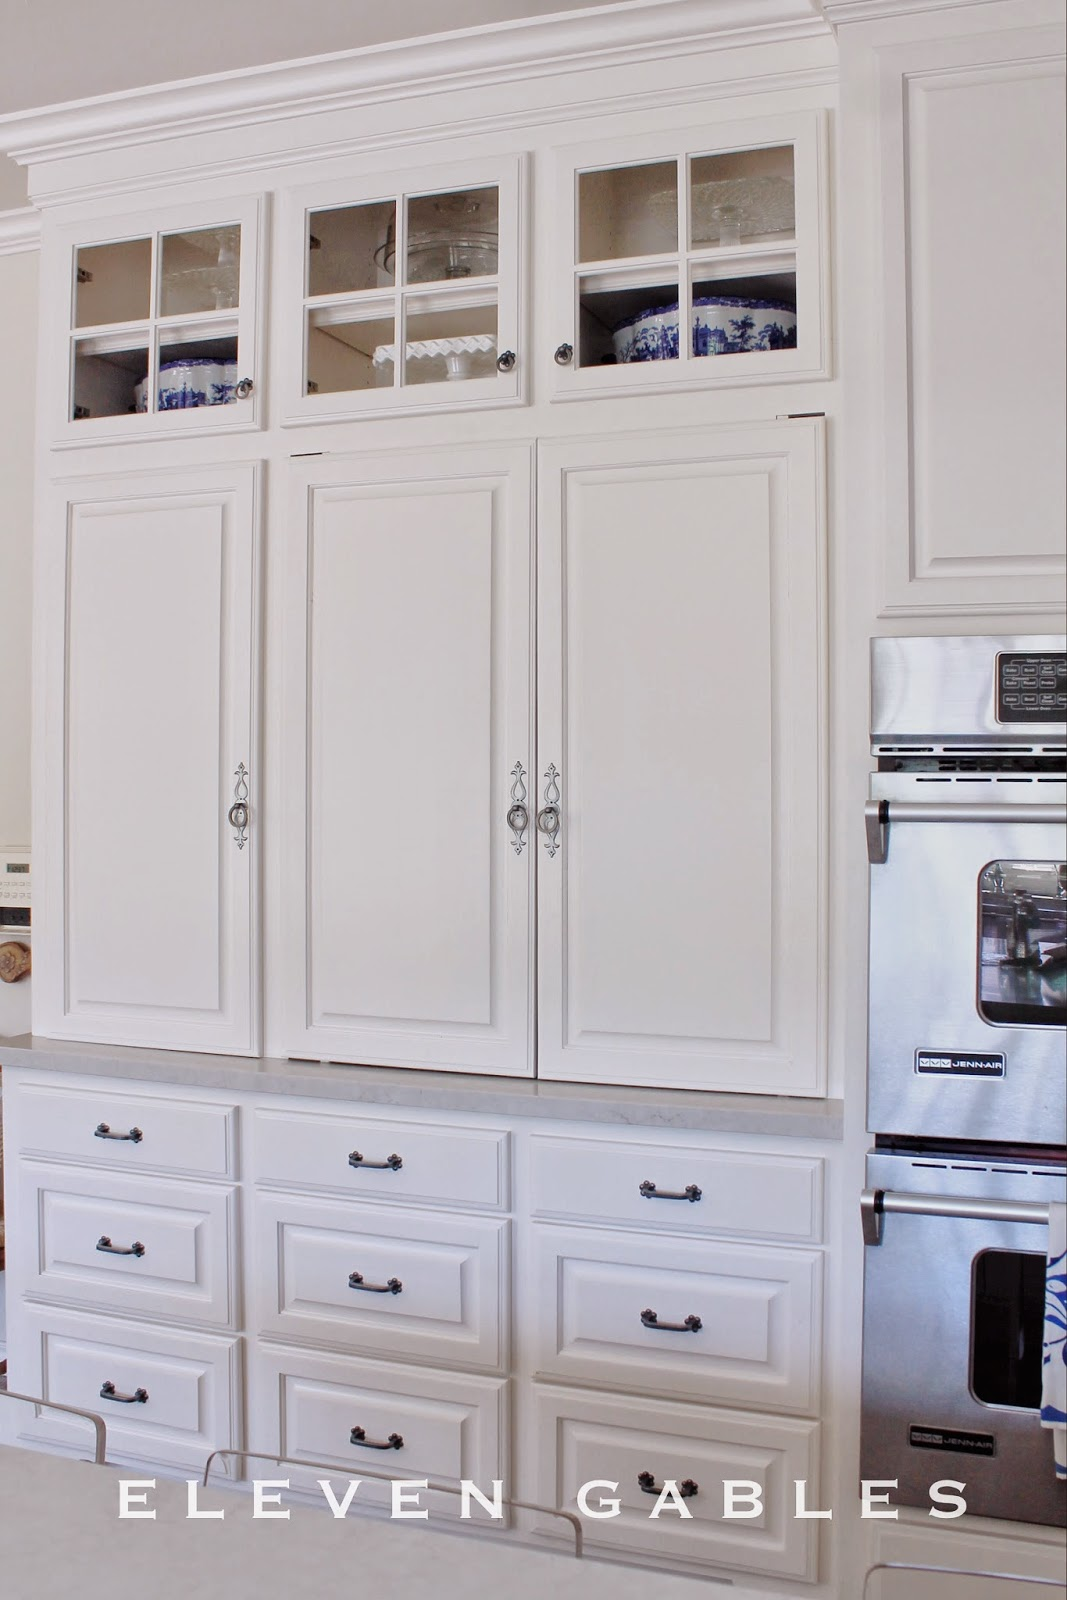 Eleven Gables: Hidden Appliance Cabinet And Desk Command Center In The  Kitchen